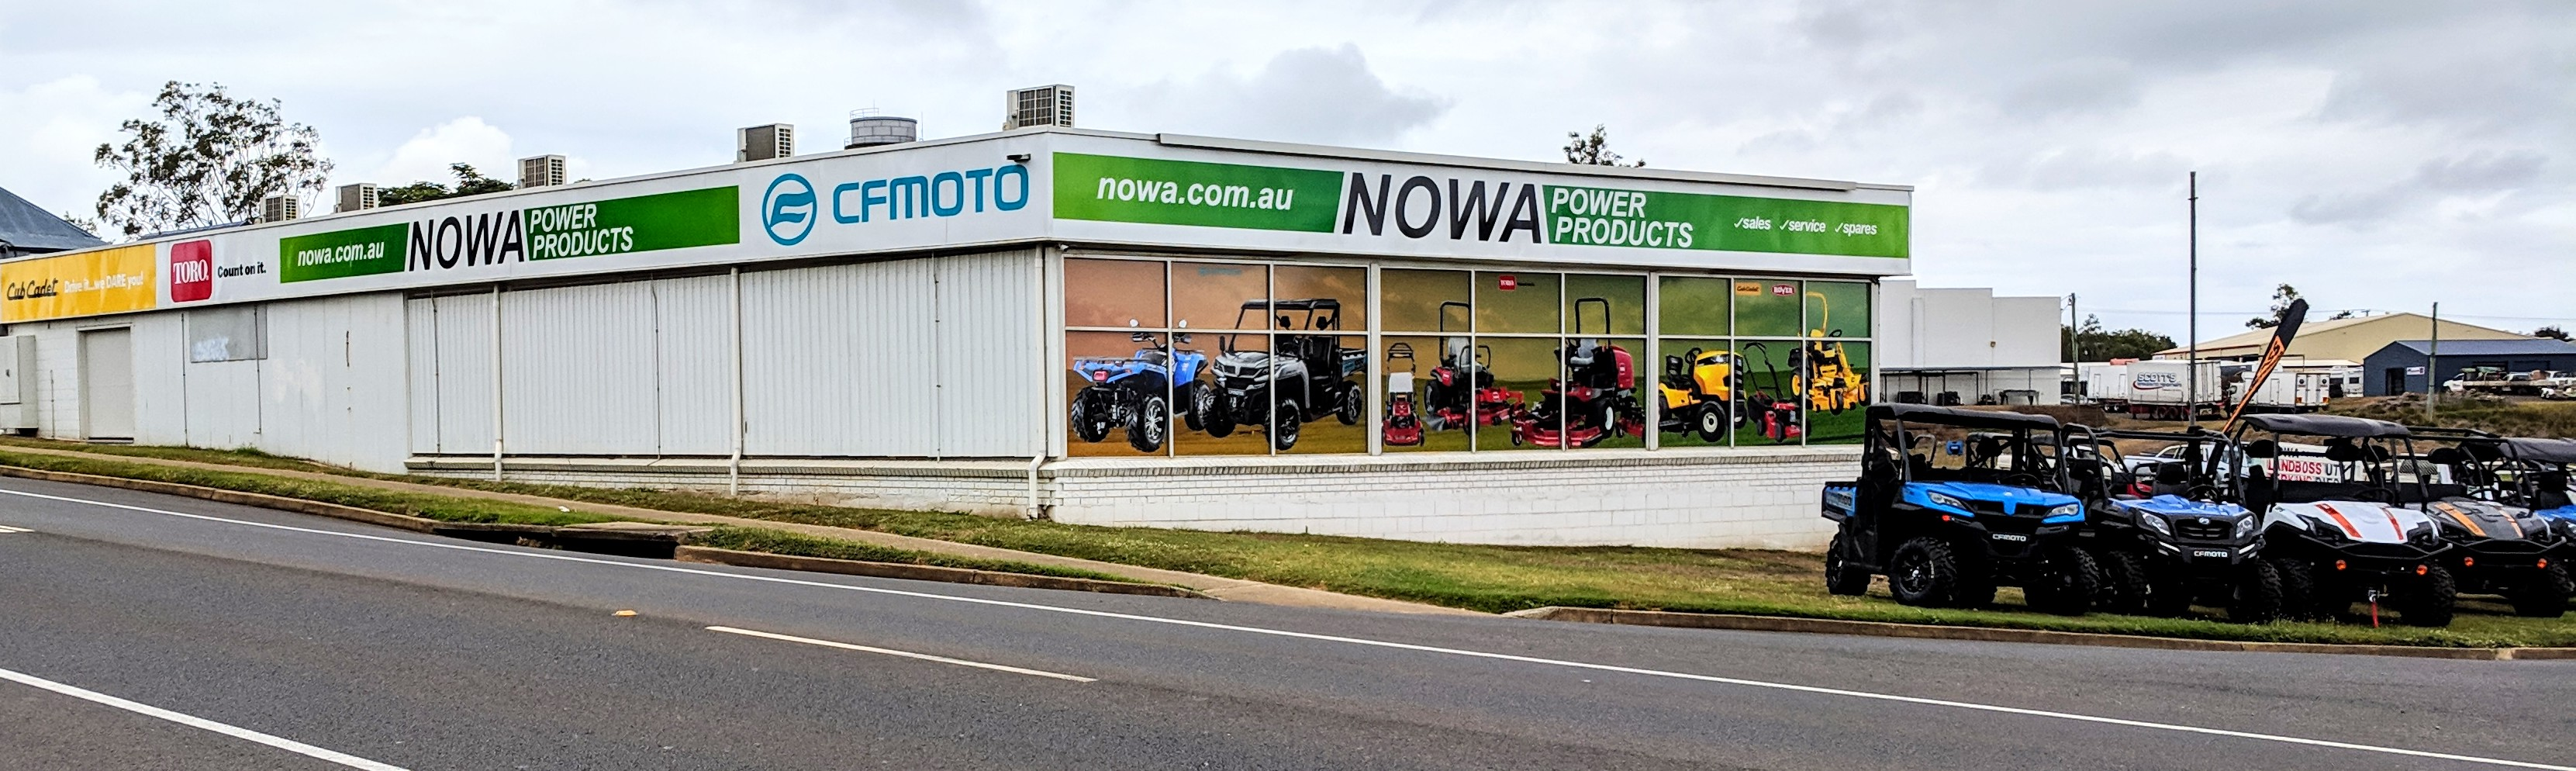 Nowa Power Products Showroom